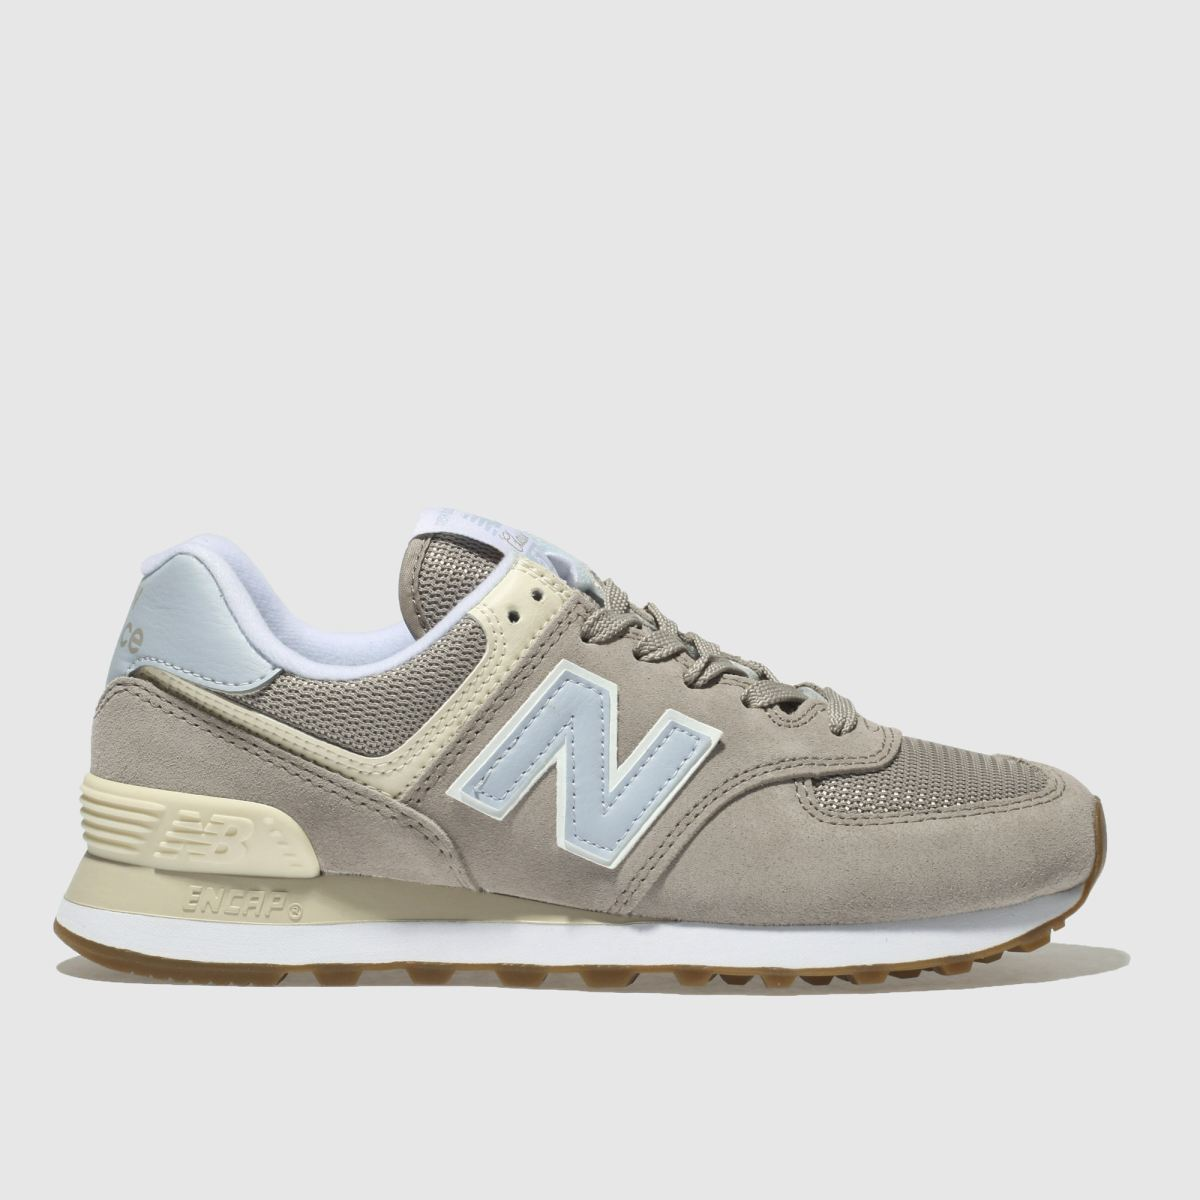 New Balance Light Grey 574 V2 Suede Trainers